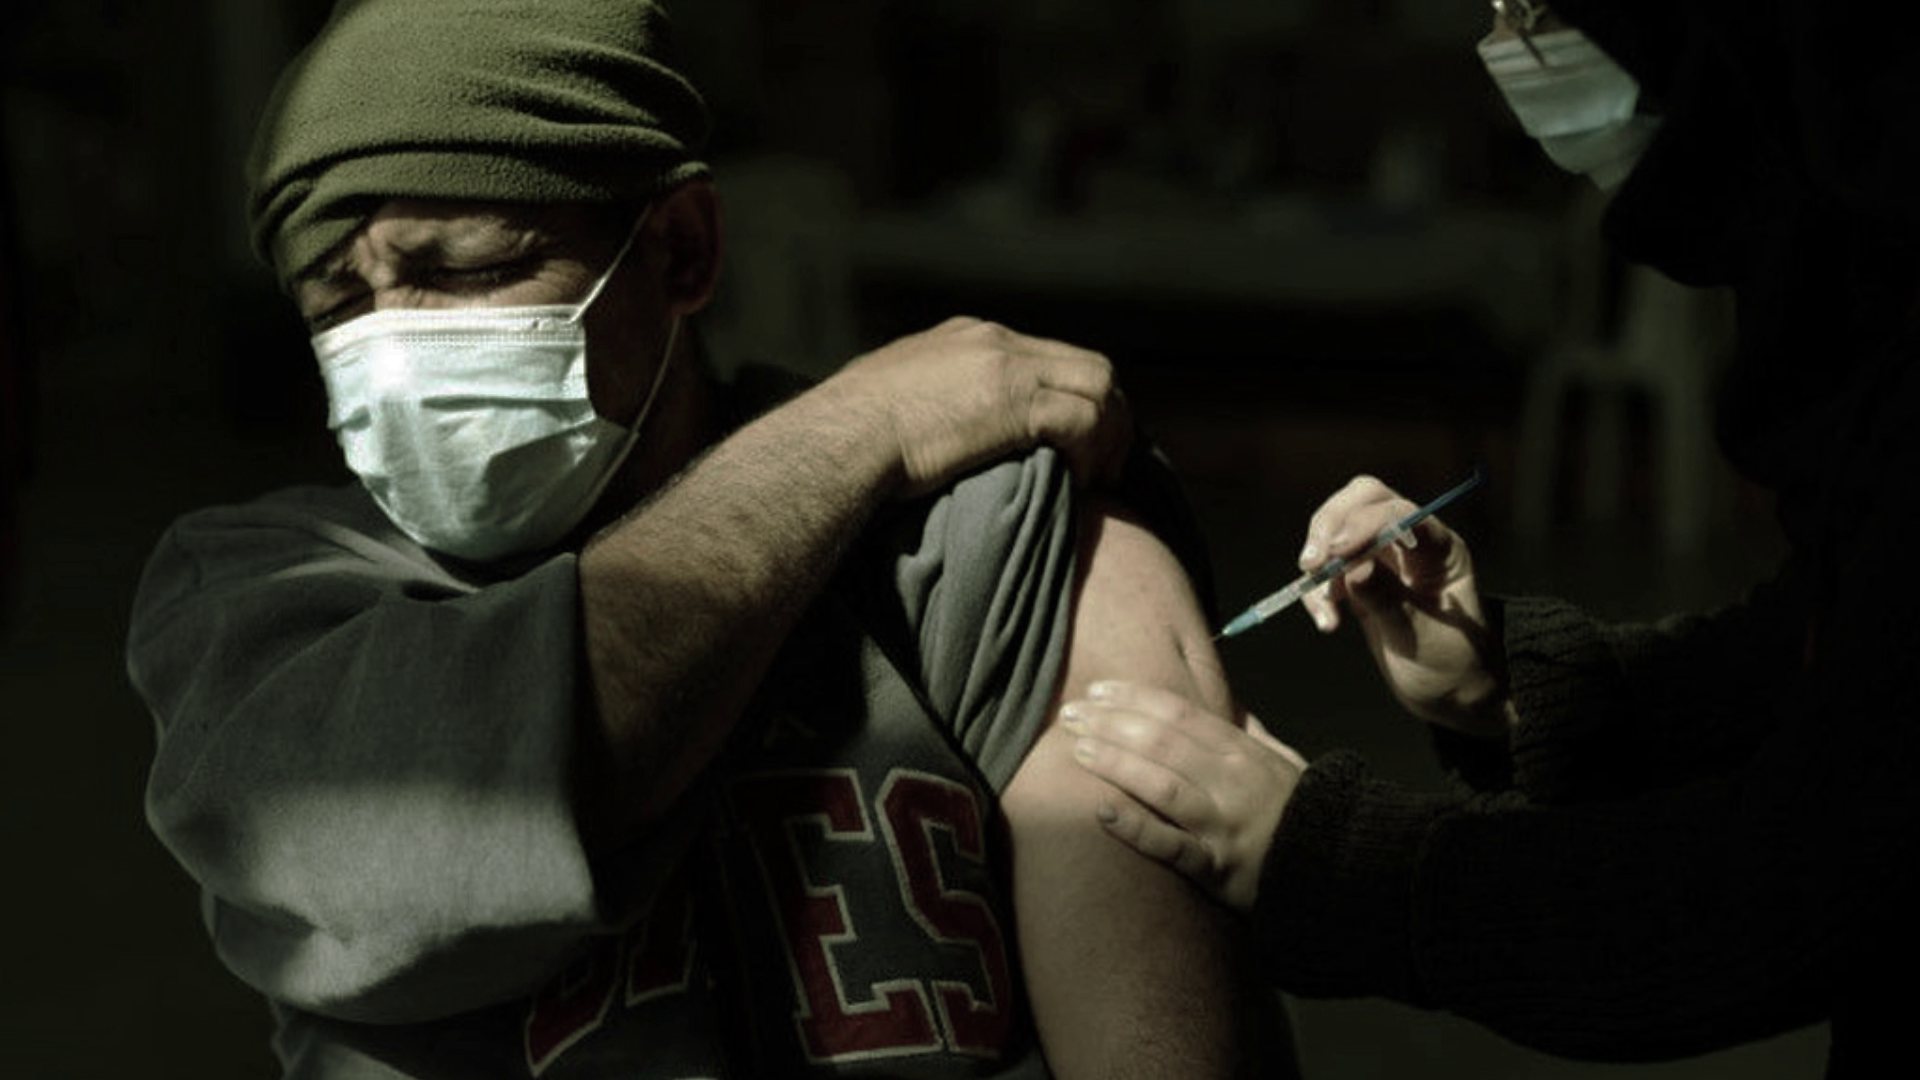 Israel continues colonial violence against Palestinians by sending expiring COVID vaccines